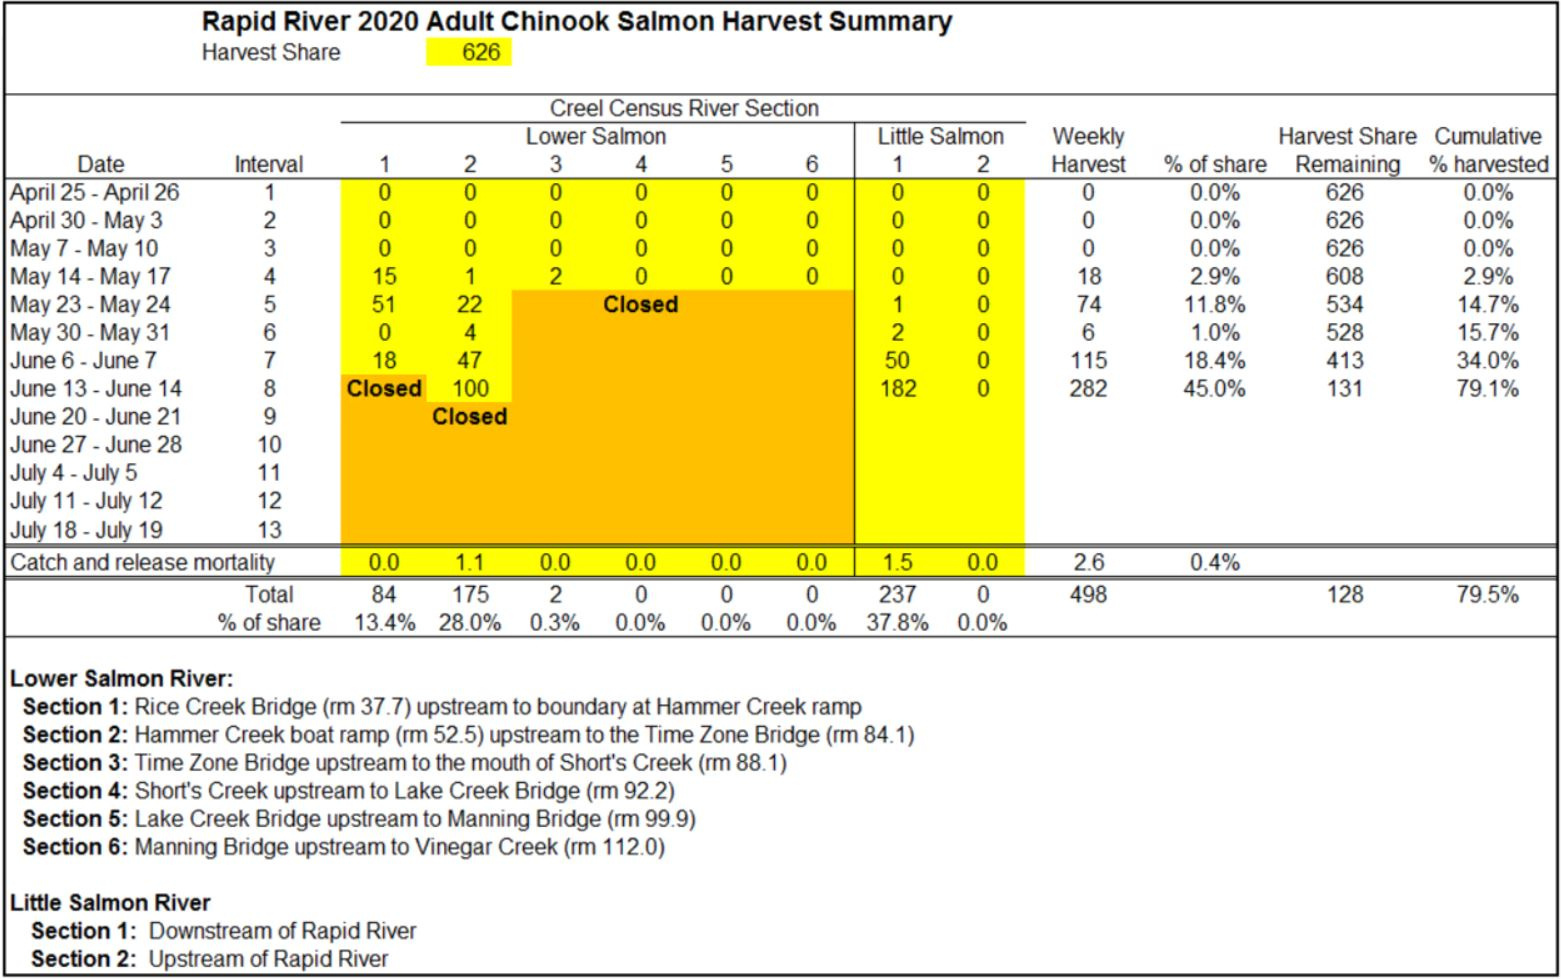 rapid_river_harvest_summary_6-16-20